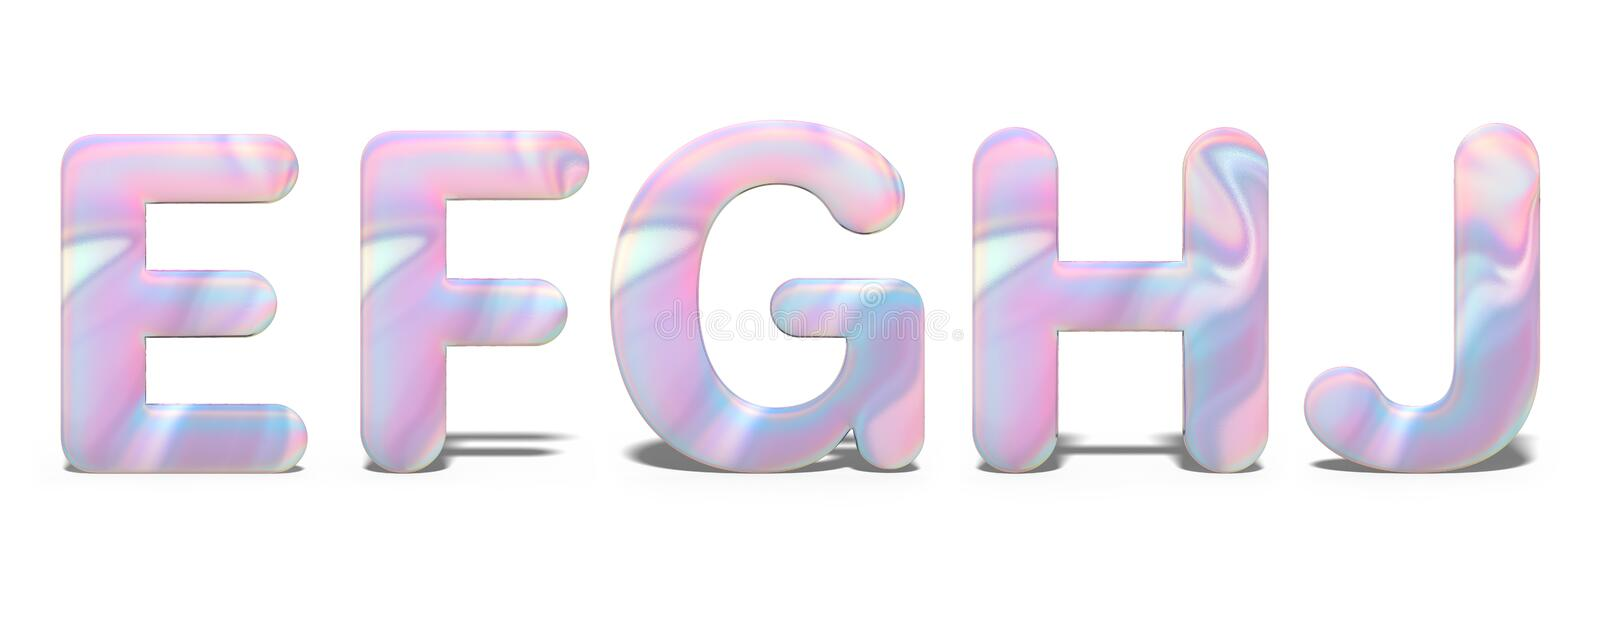 Set of capital letters E, F, G, H, J in bright holographic design, shiny neon alphabet.  royalty free illustration